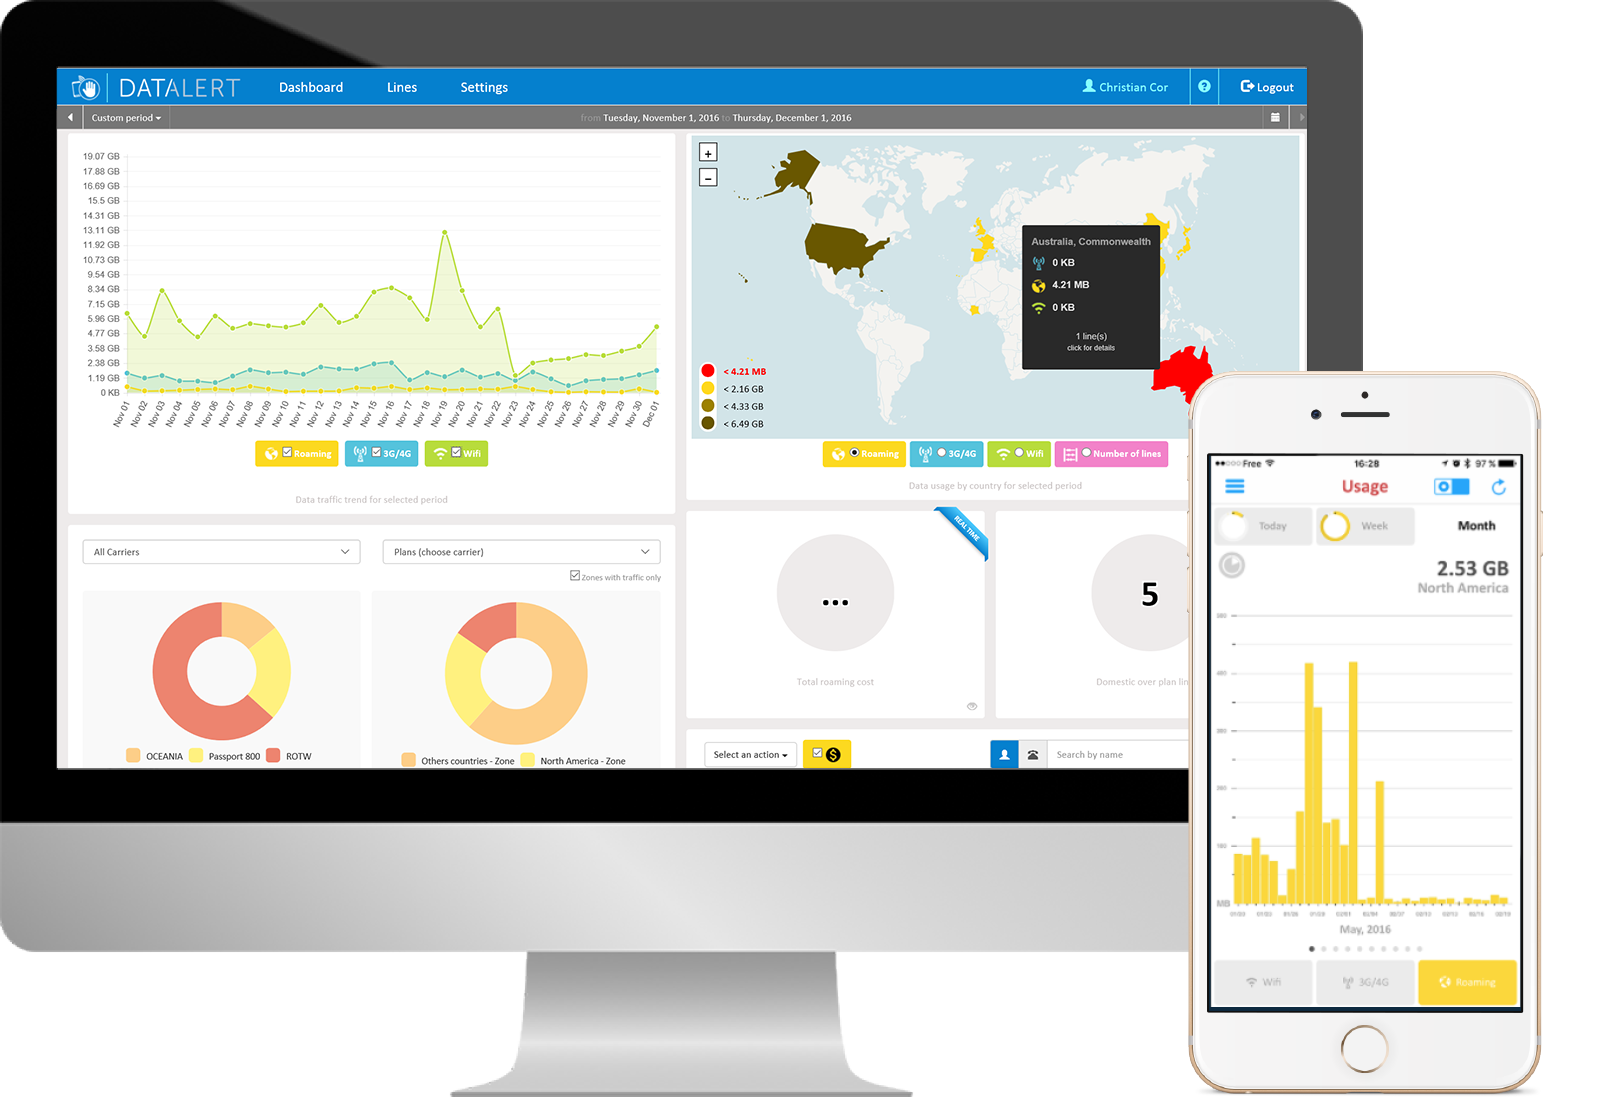 Datalert - Manage your data  Know your costs